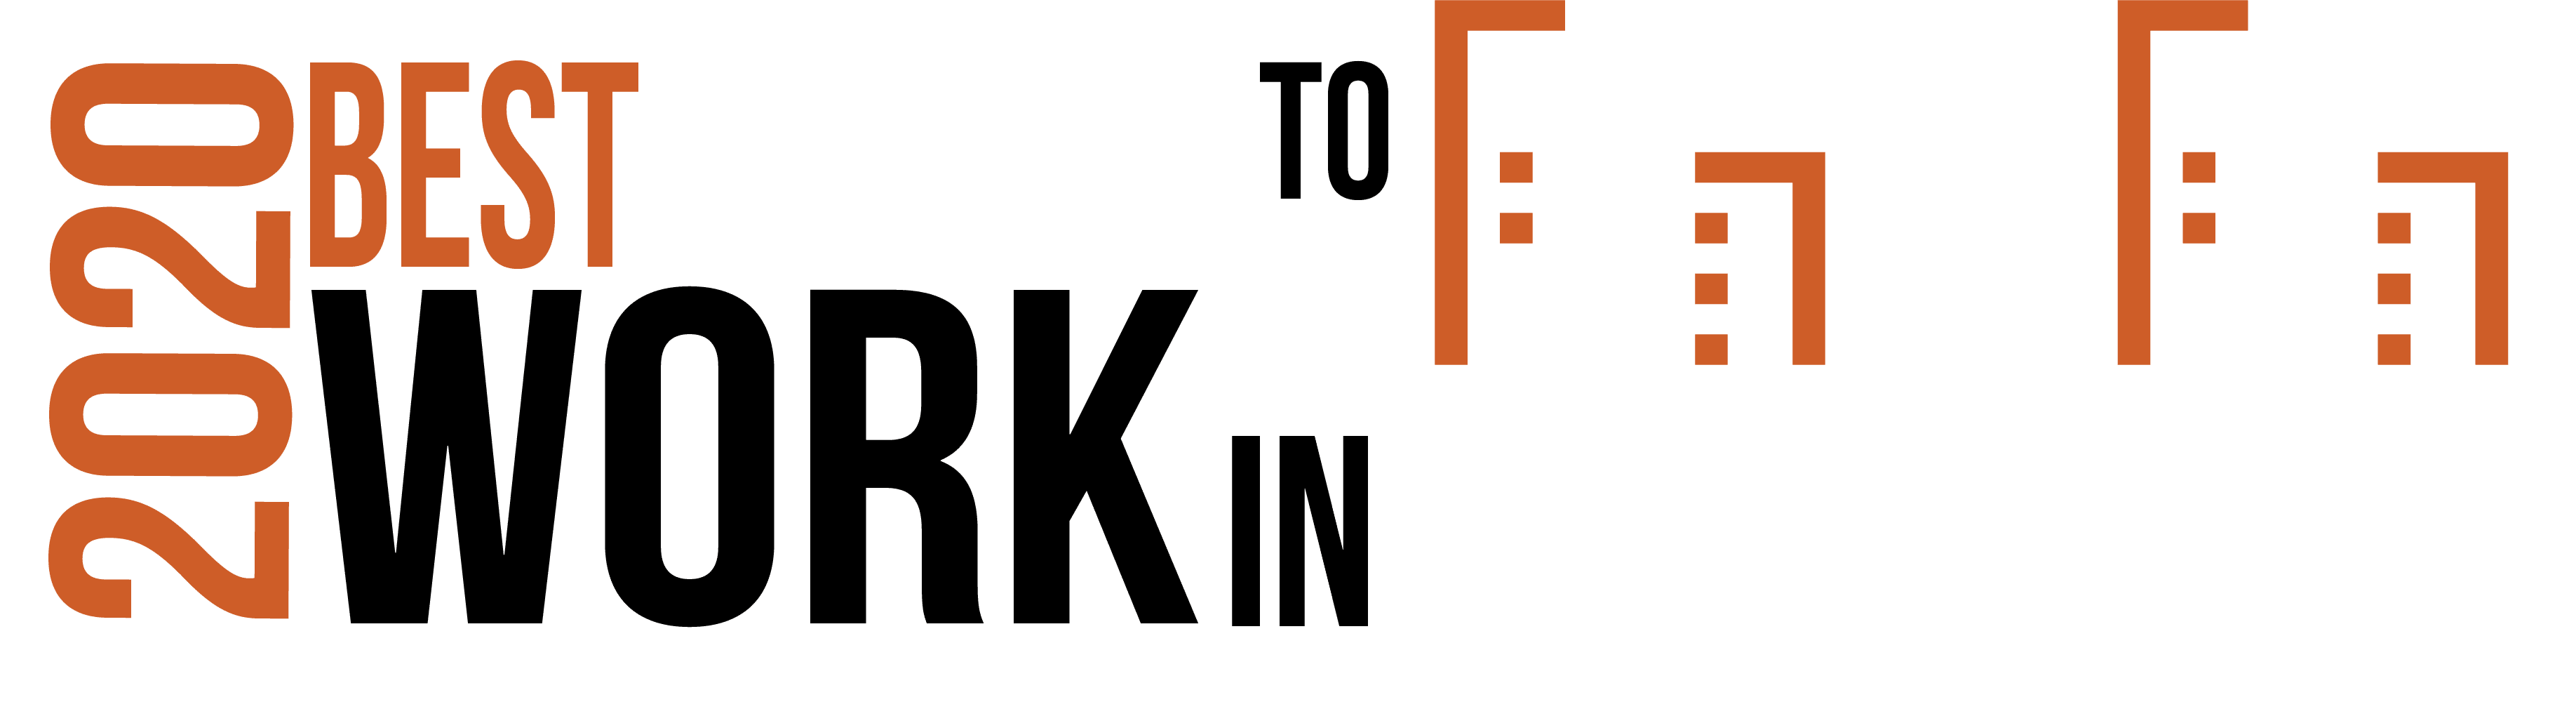 2020 bets places to work in multifamily